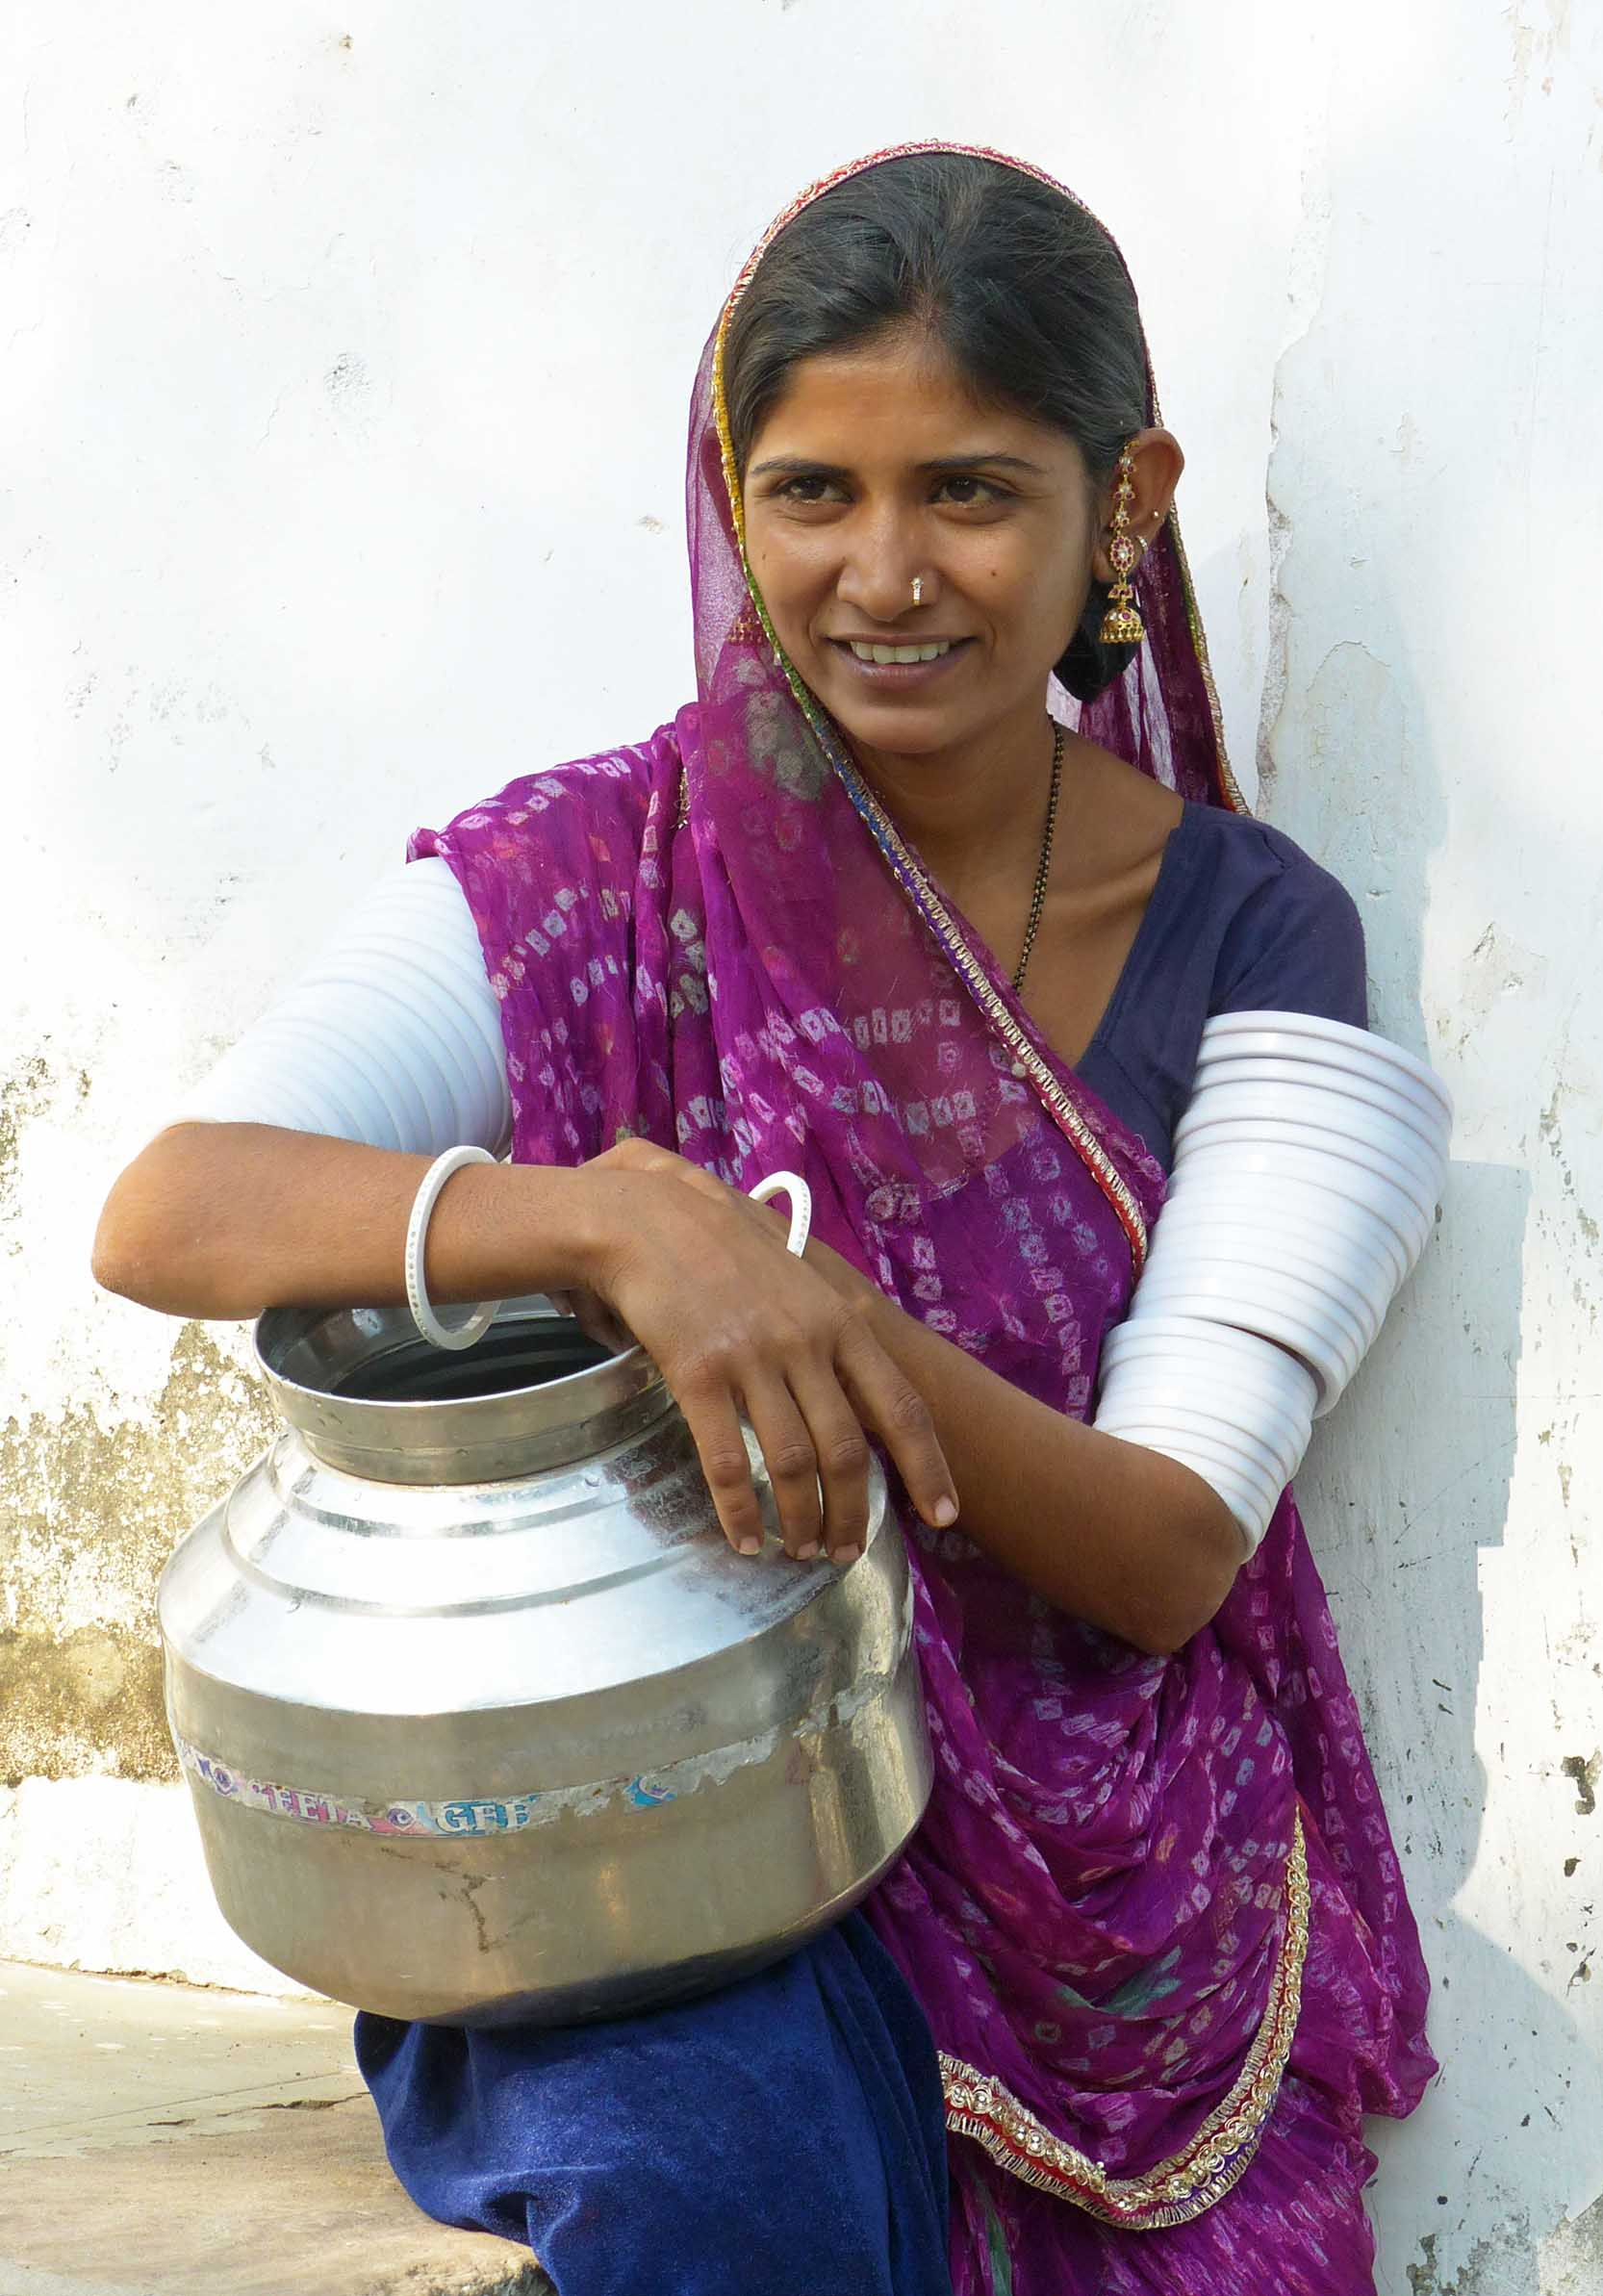 Young woman in blue and purple with metal container